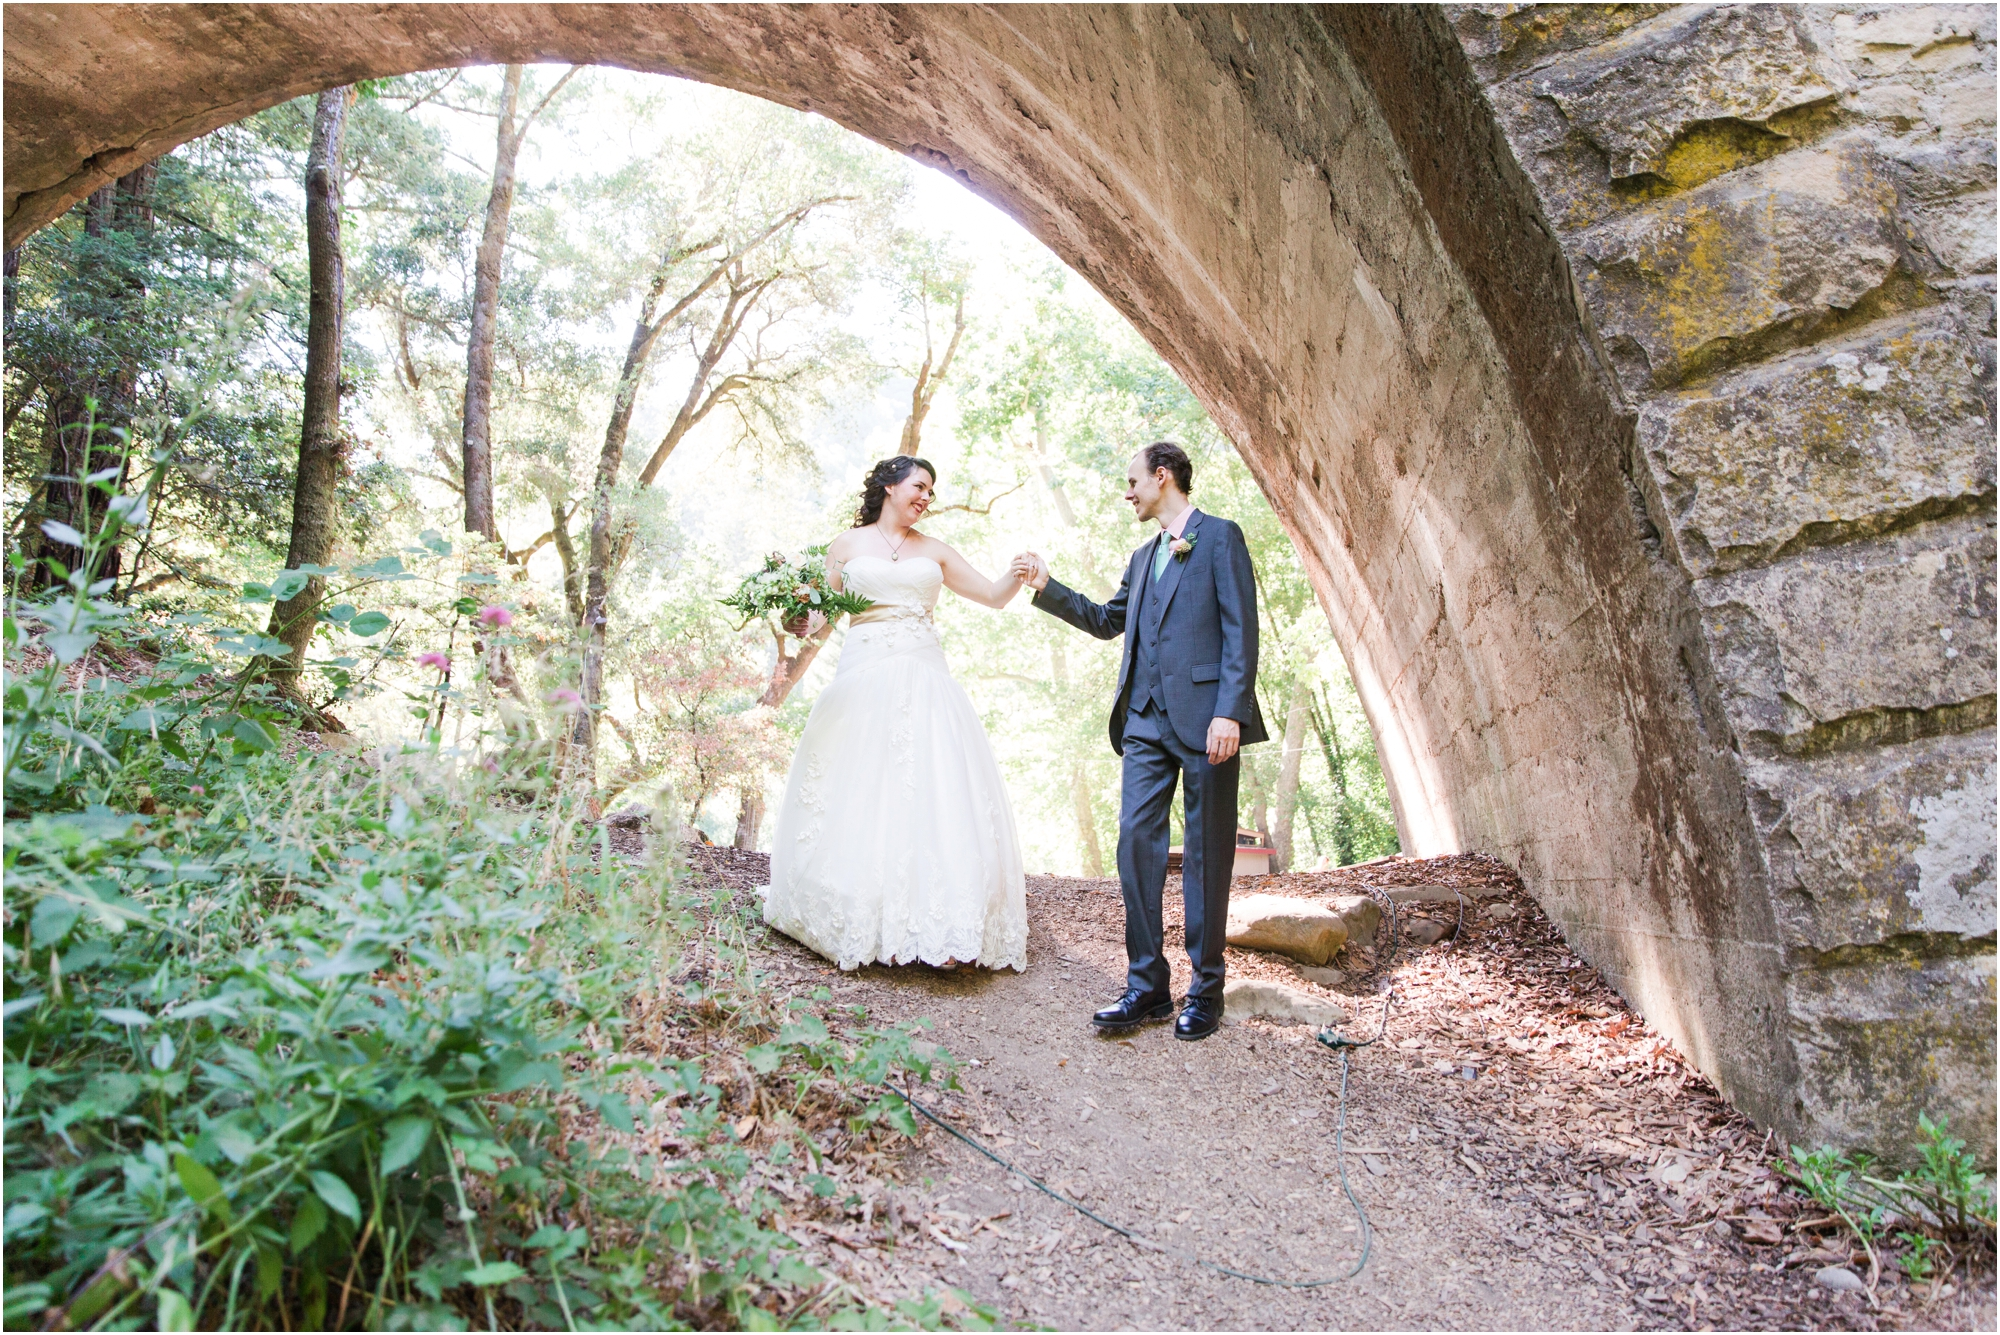 Saratoga Springs wedding pictures by Briana Calderon Photography_1831.jpg